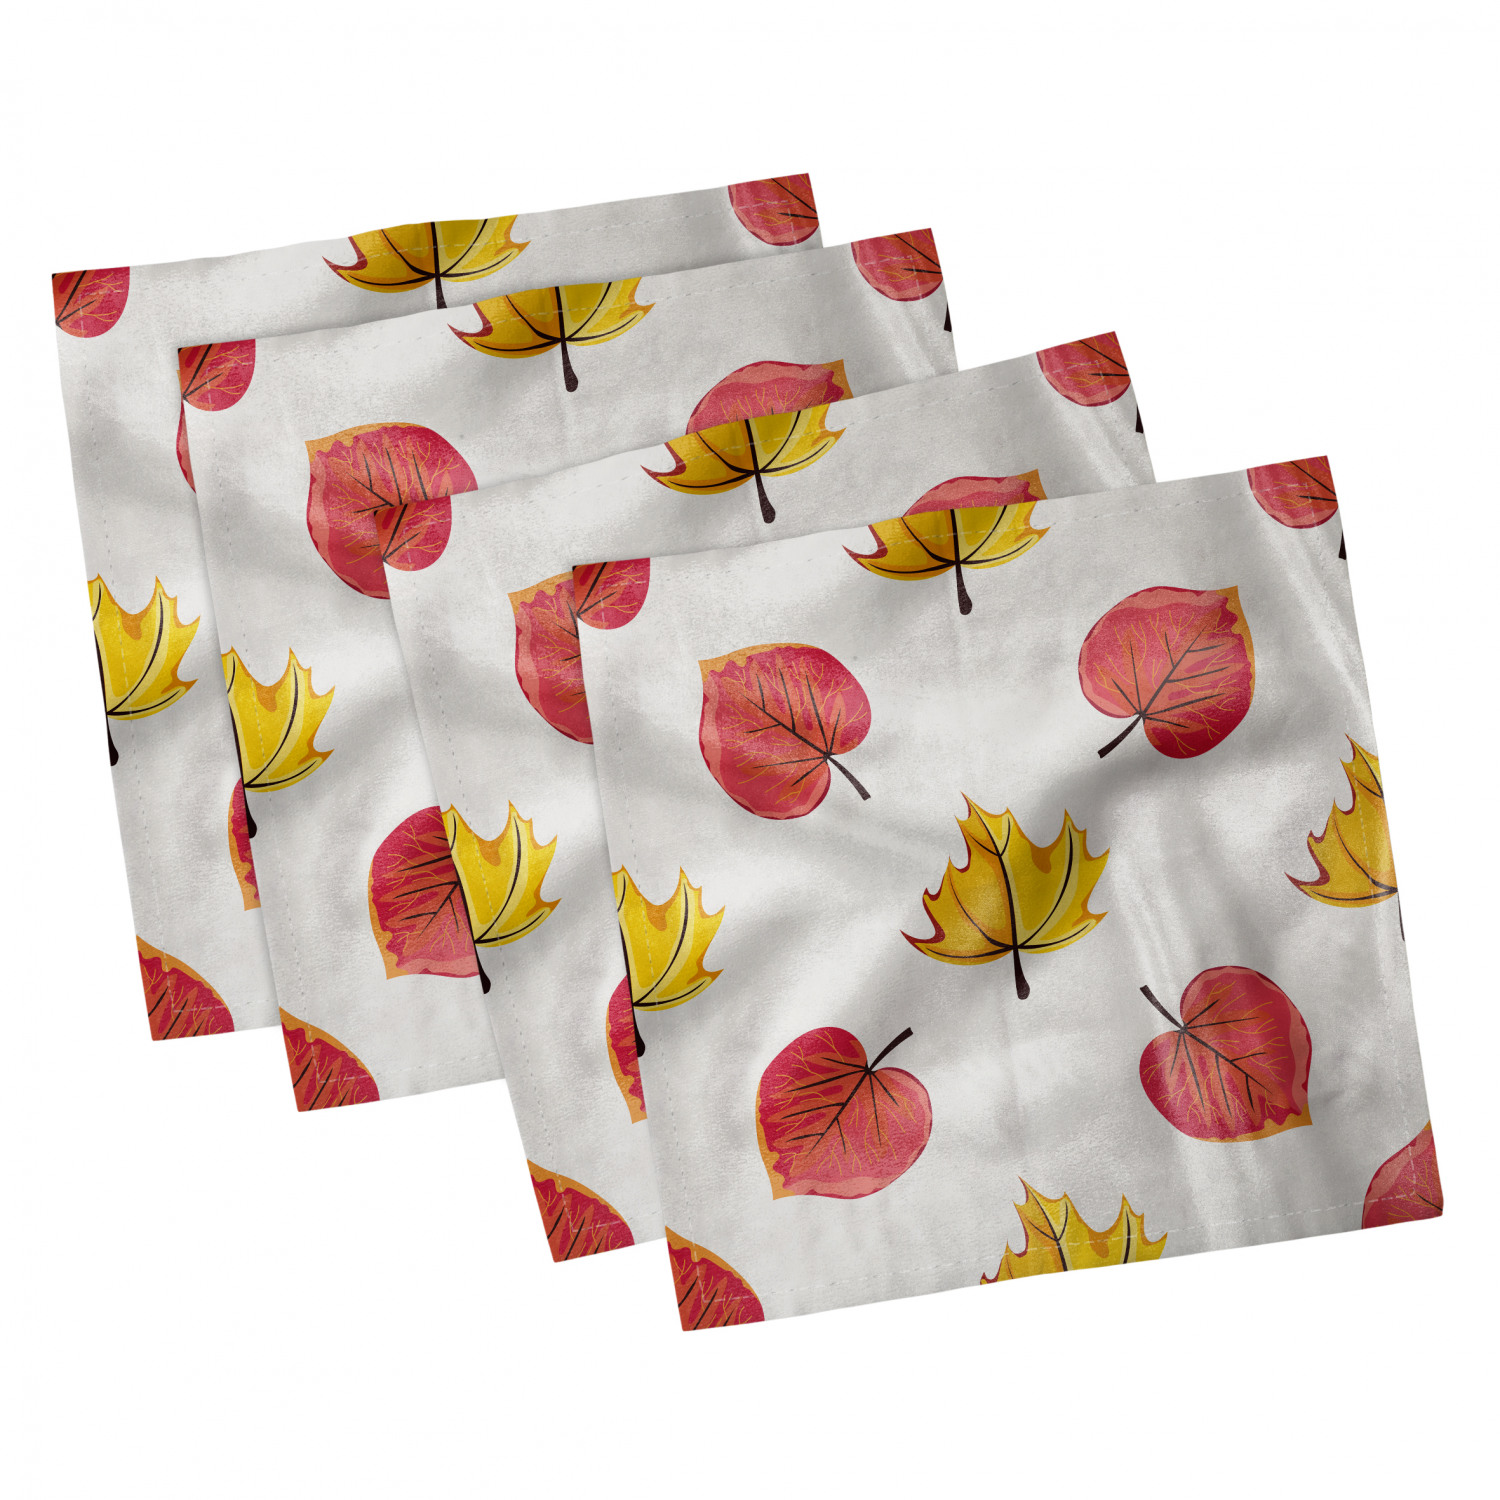 thumbnail 63 - Ambesonne-Leaves-Forest-Decorative-Satin-Napkins-Set-of-4-Party-Dinner-Fabric